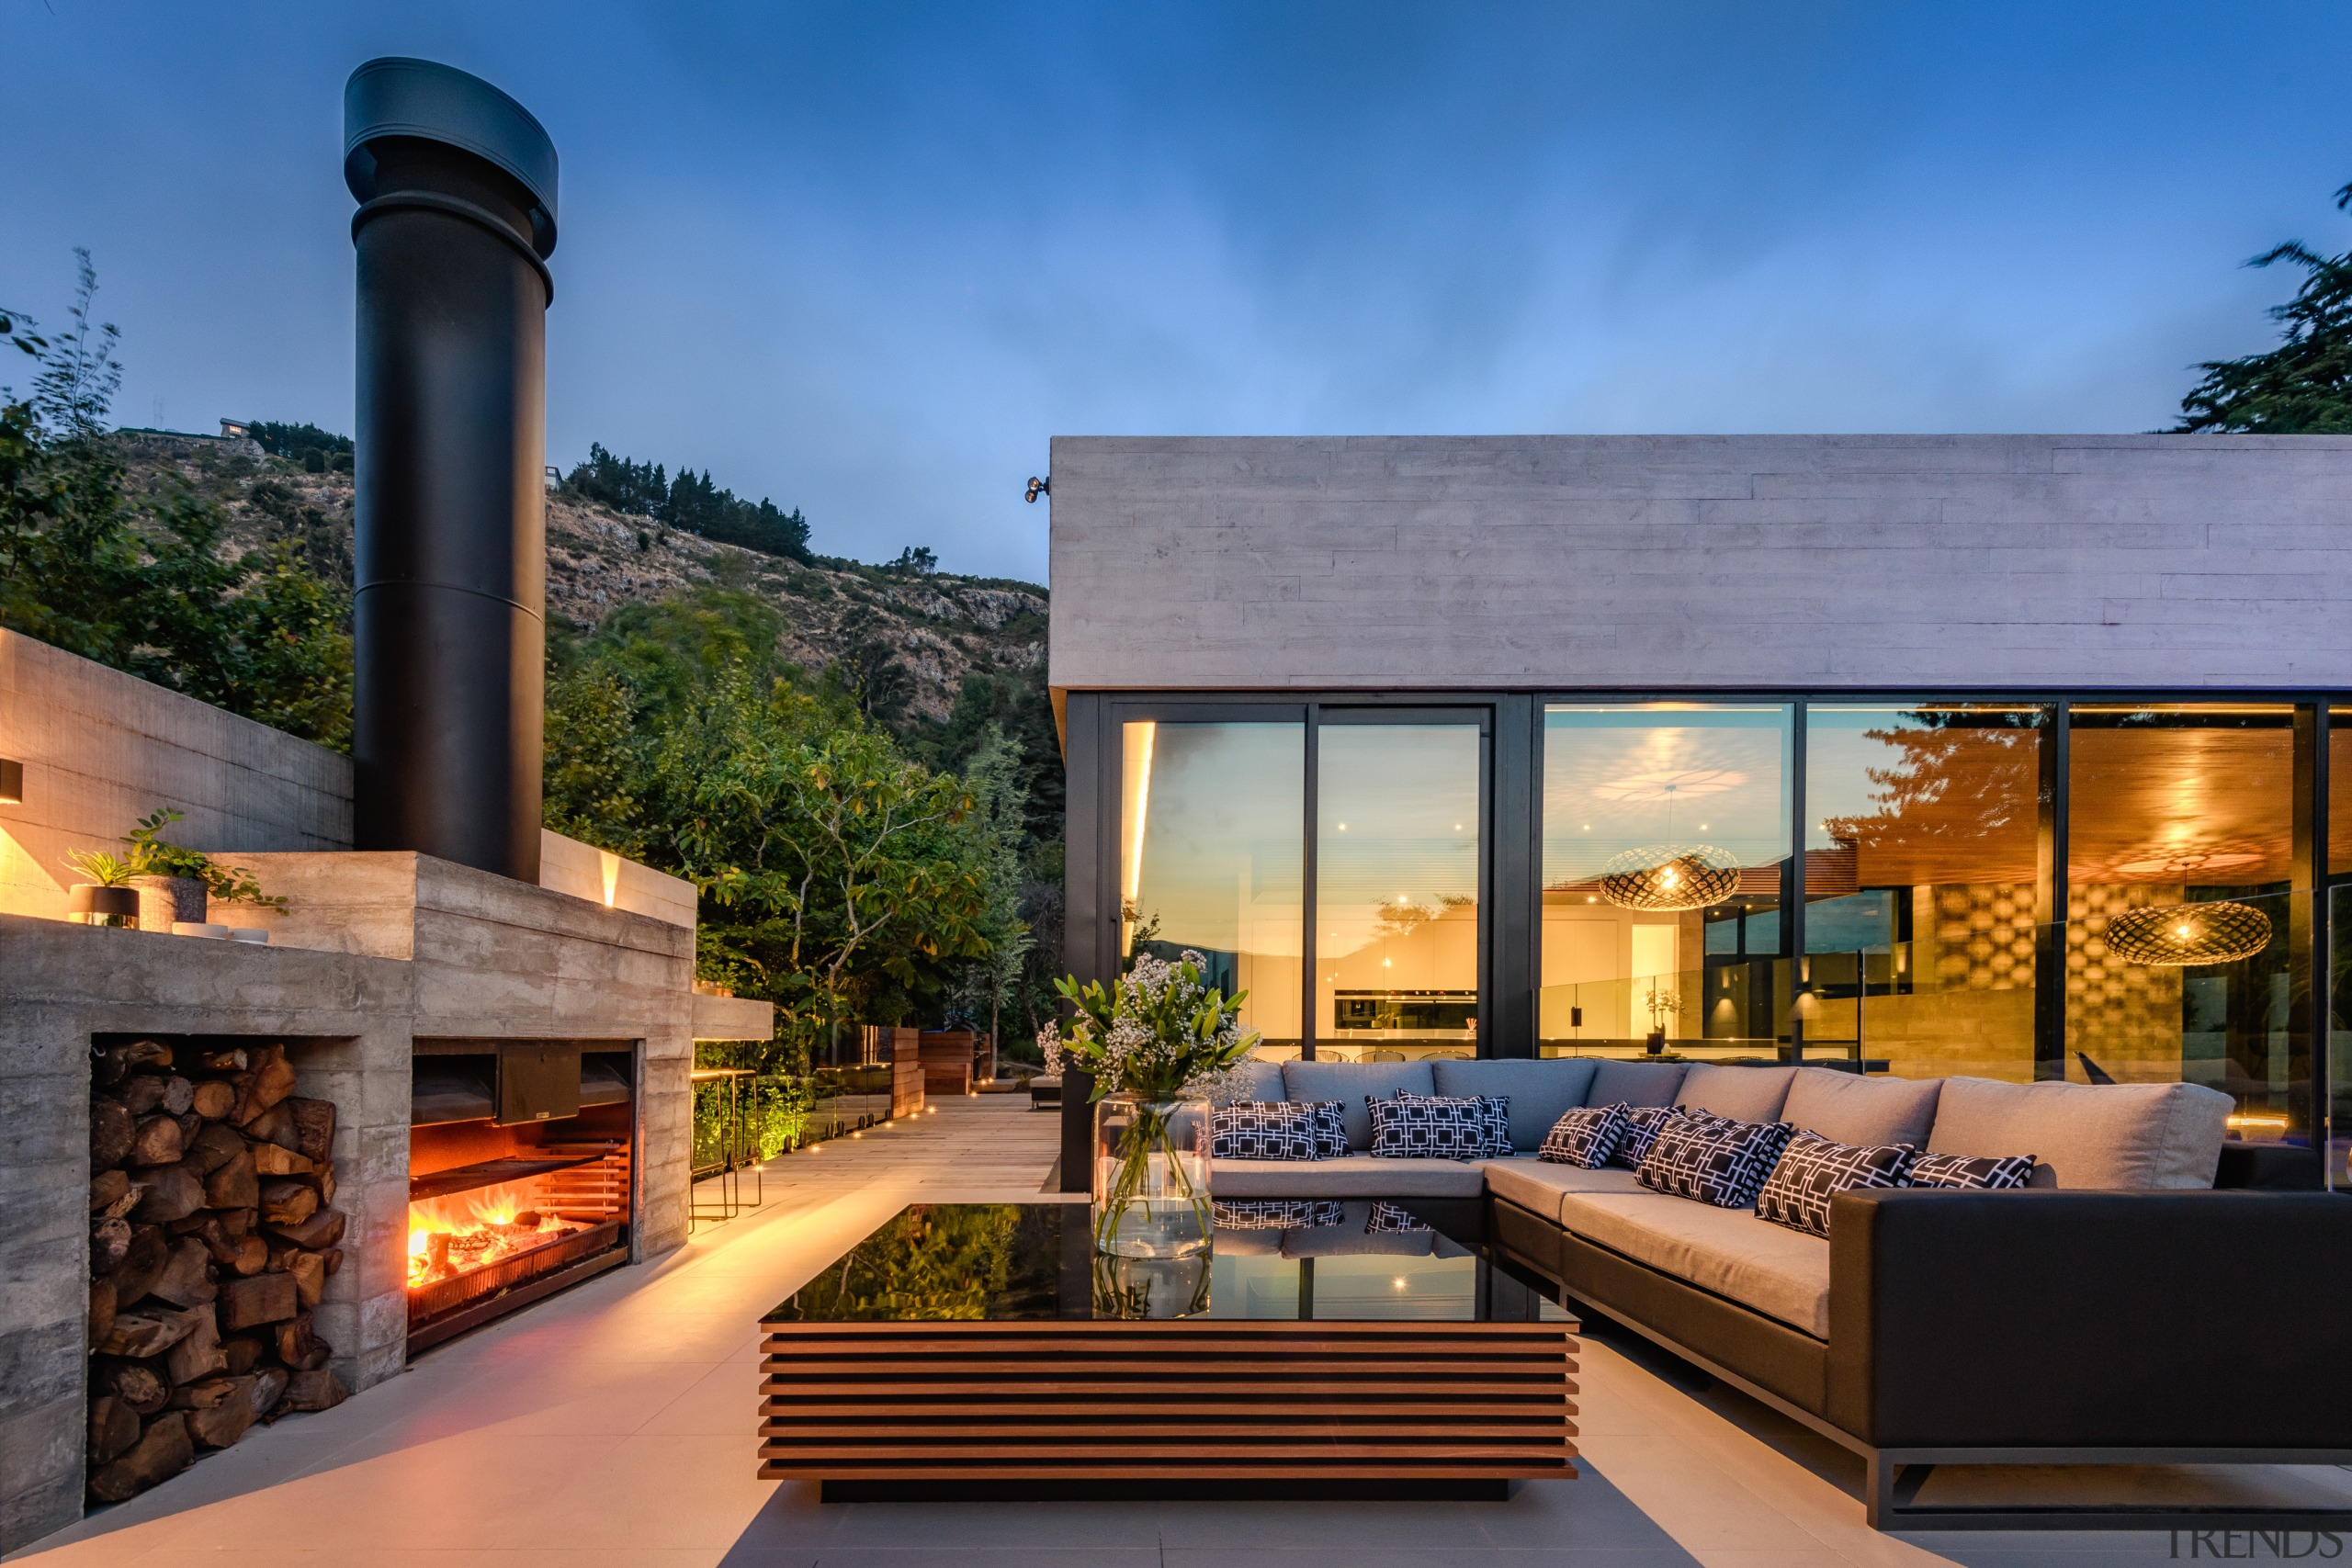 Together with the home and pool, even the architecture, backyard, building, design, estate, facade, home, house, interior design, landscape, landscaping, living room, mansion, mixed-use, patio, property, real estate, residential area, roof, room, sky